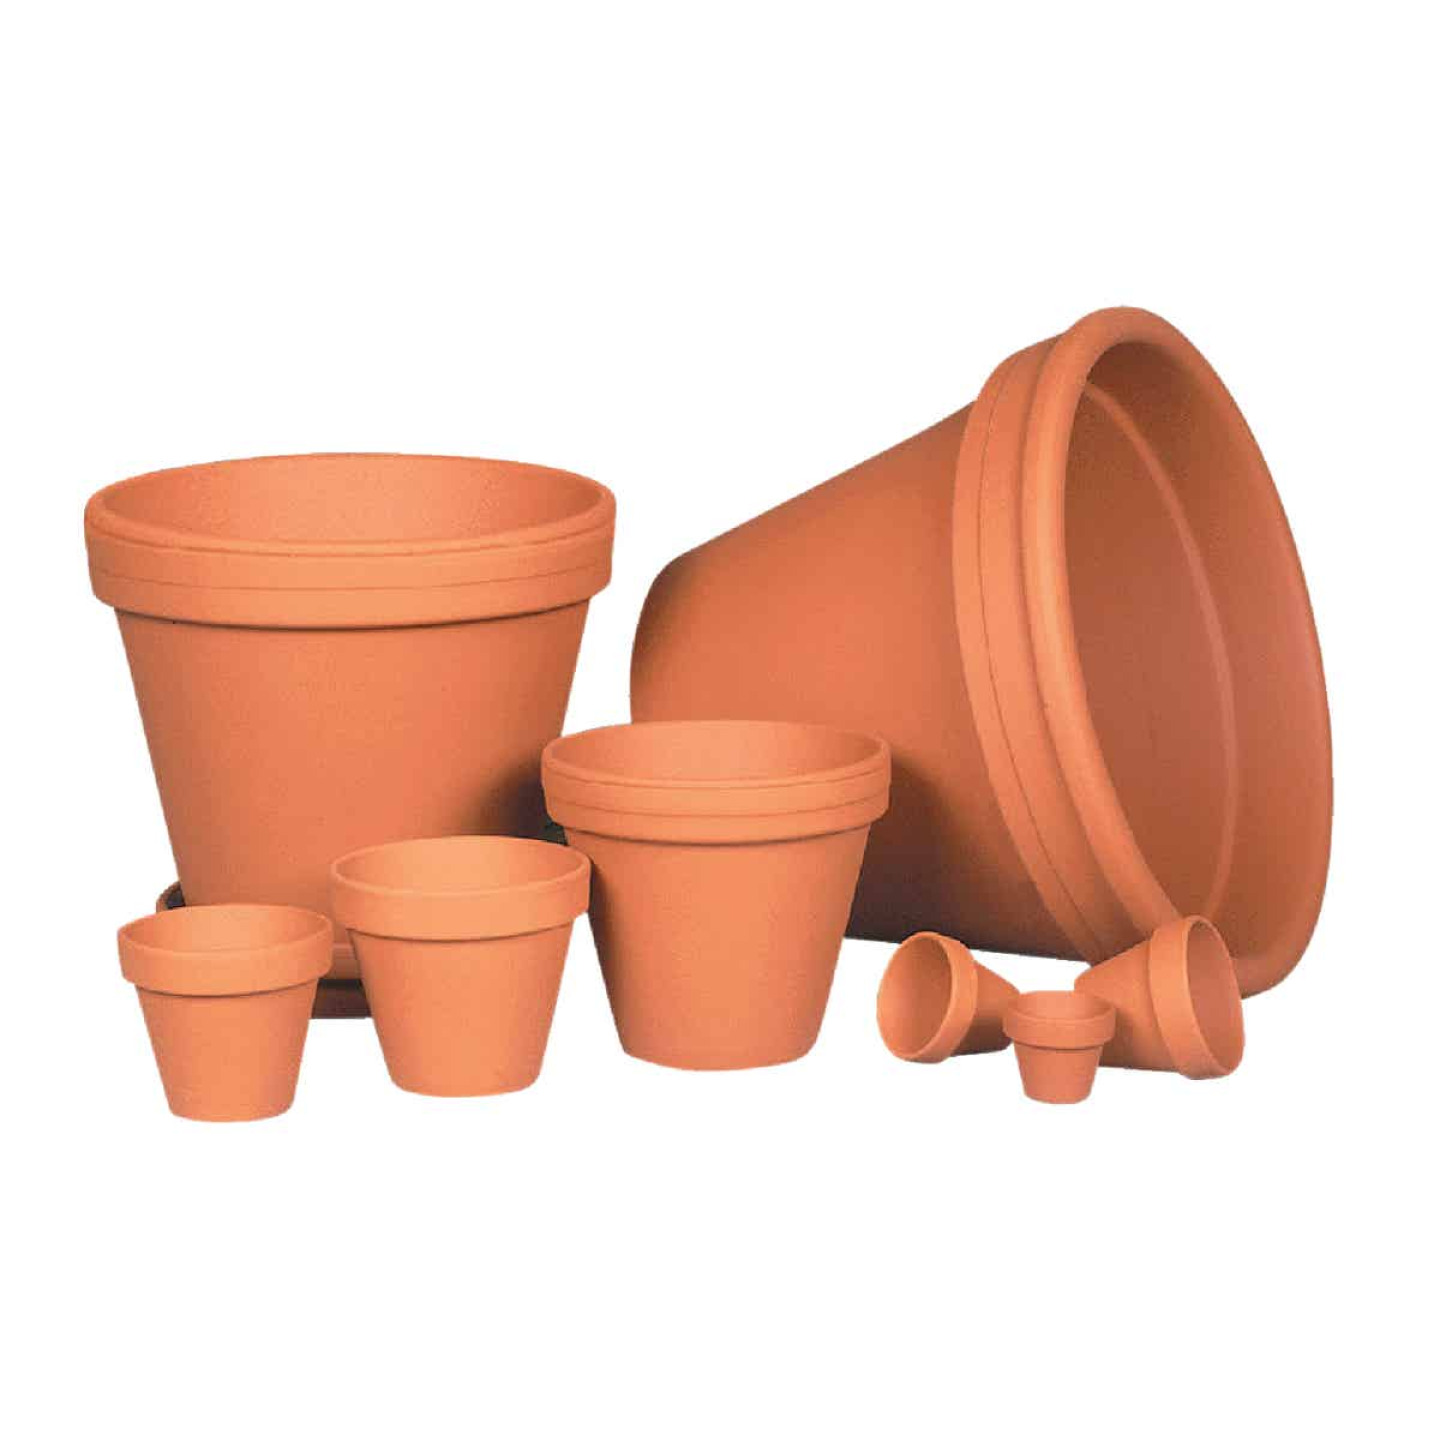 Ceramo 5-1/4 In. H. x 6 In. Dia. Terracotta Clay Standard Flower Pot Image 3